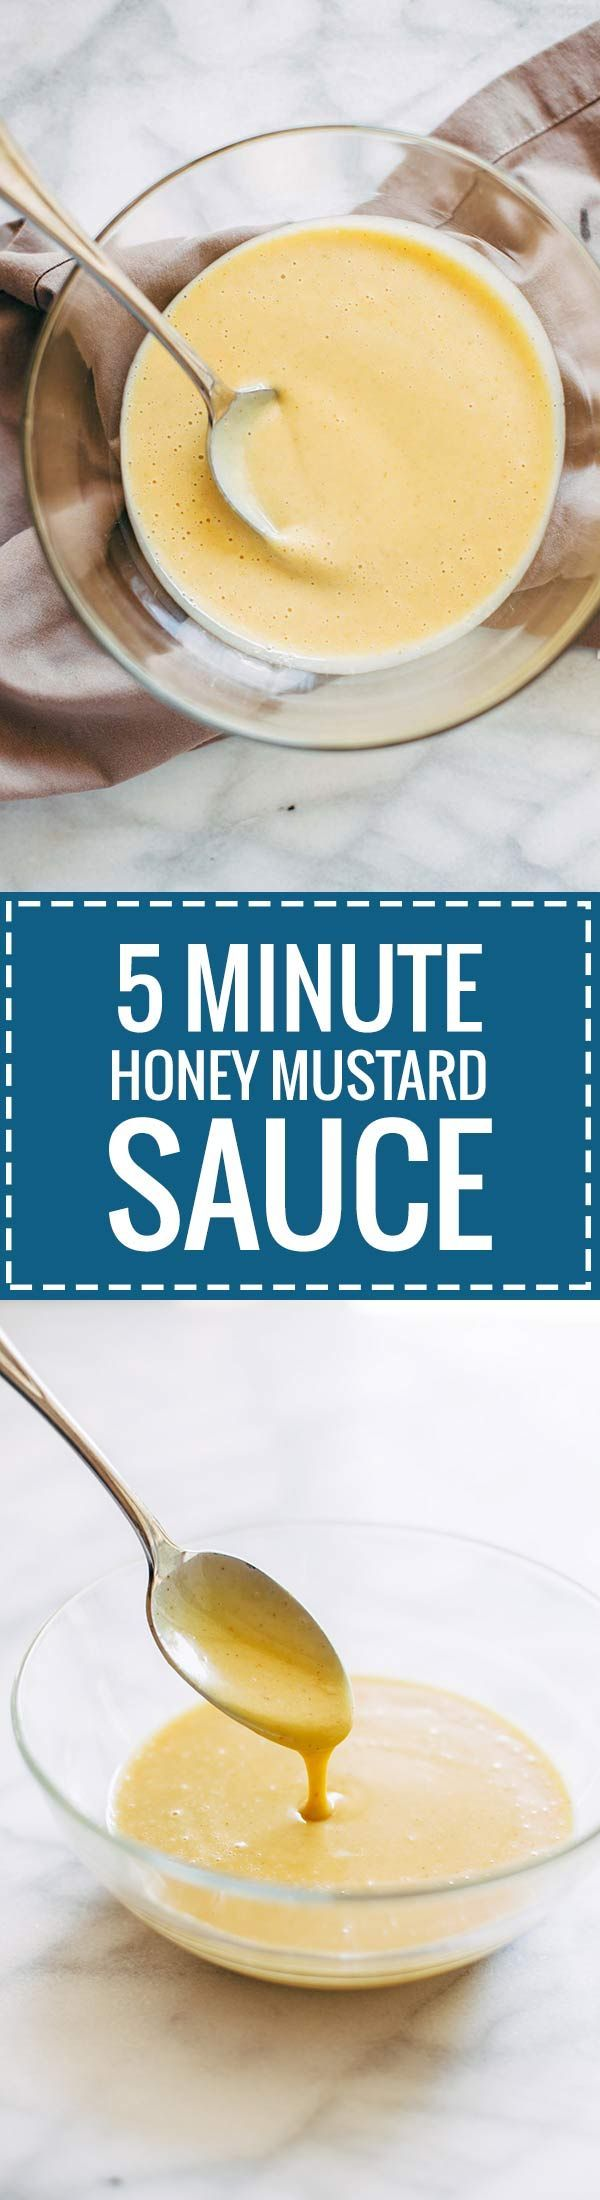 5 Minute Honey Mustard Sauce - just 5 ingredients to this dipping sauce that can double as a dressing! | pinchofyum.com